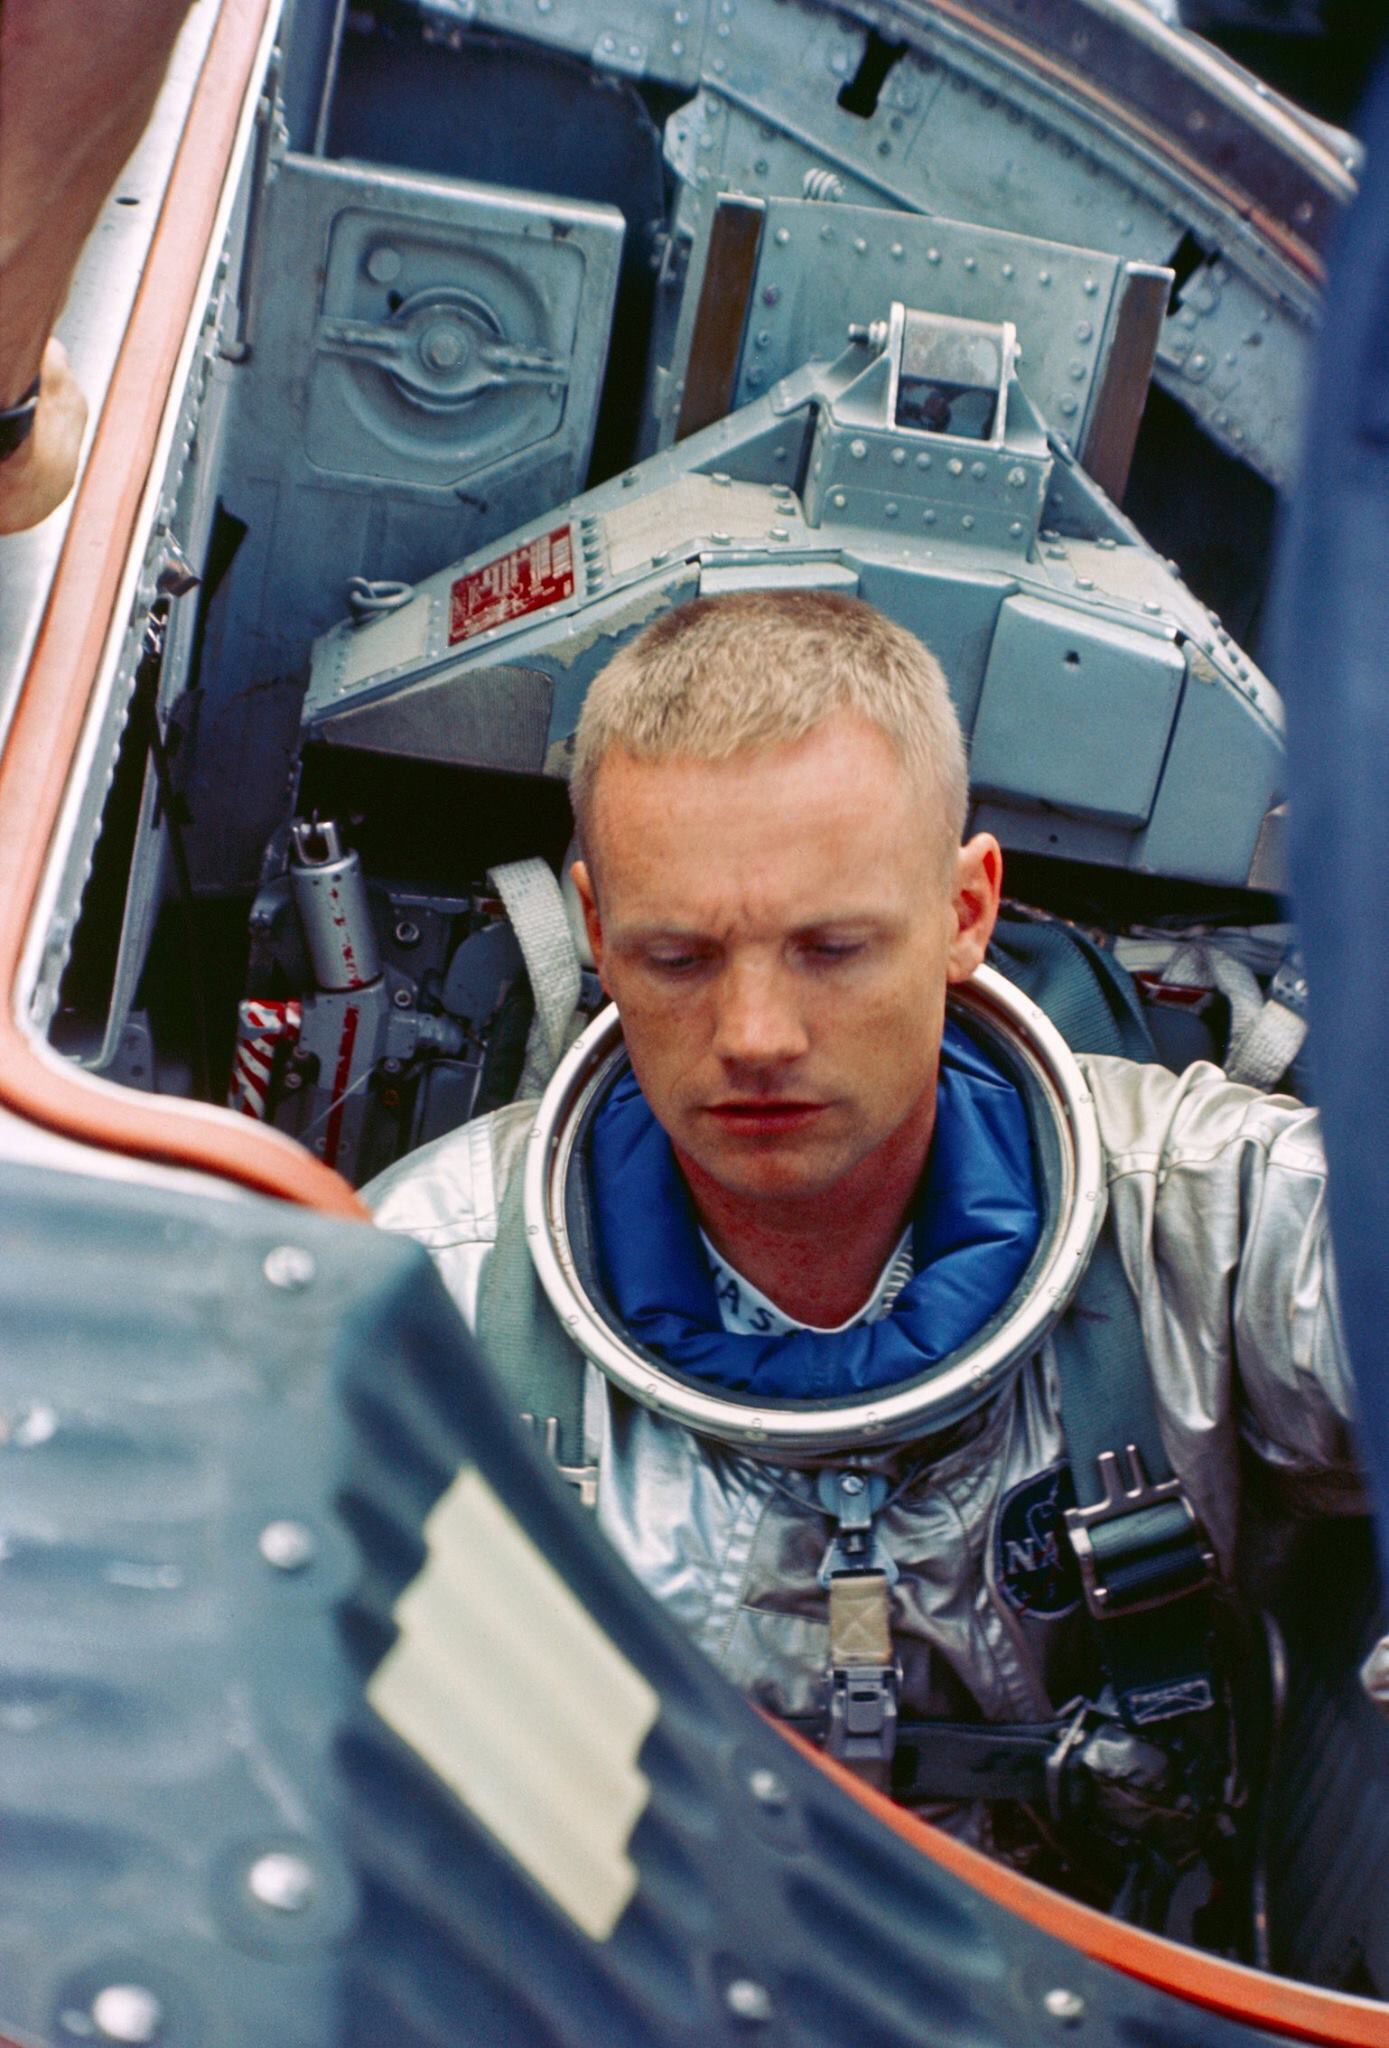 neil armstrong space missions - photo #18